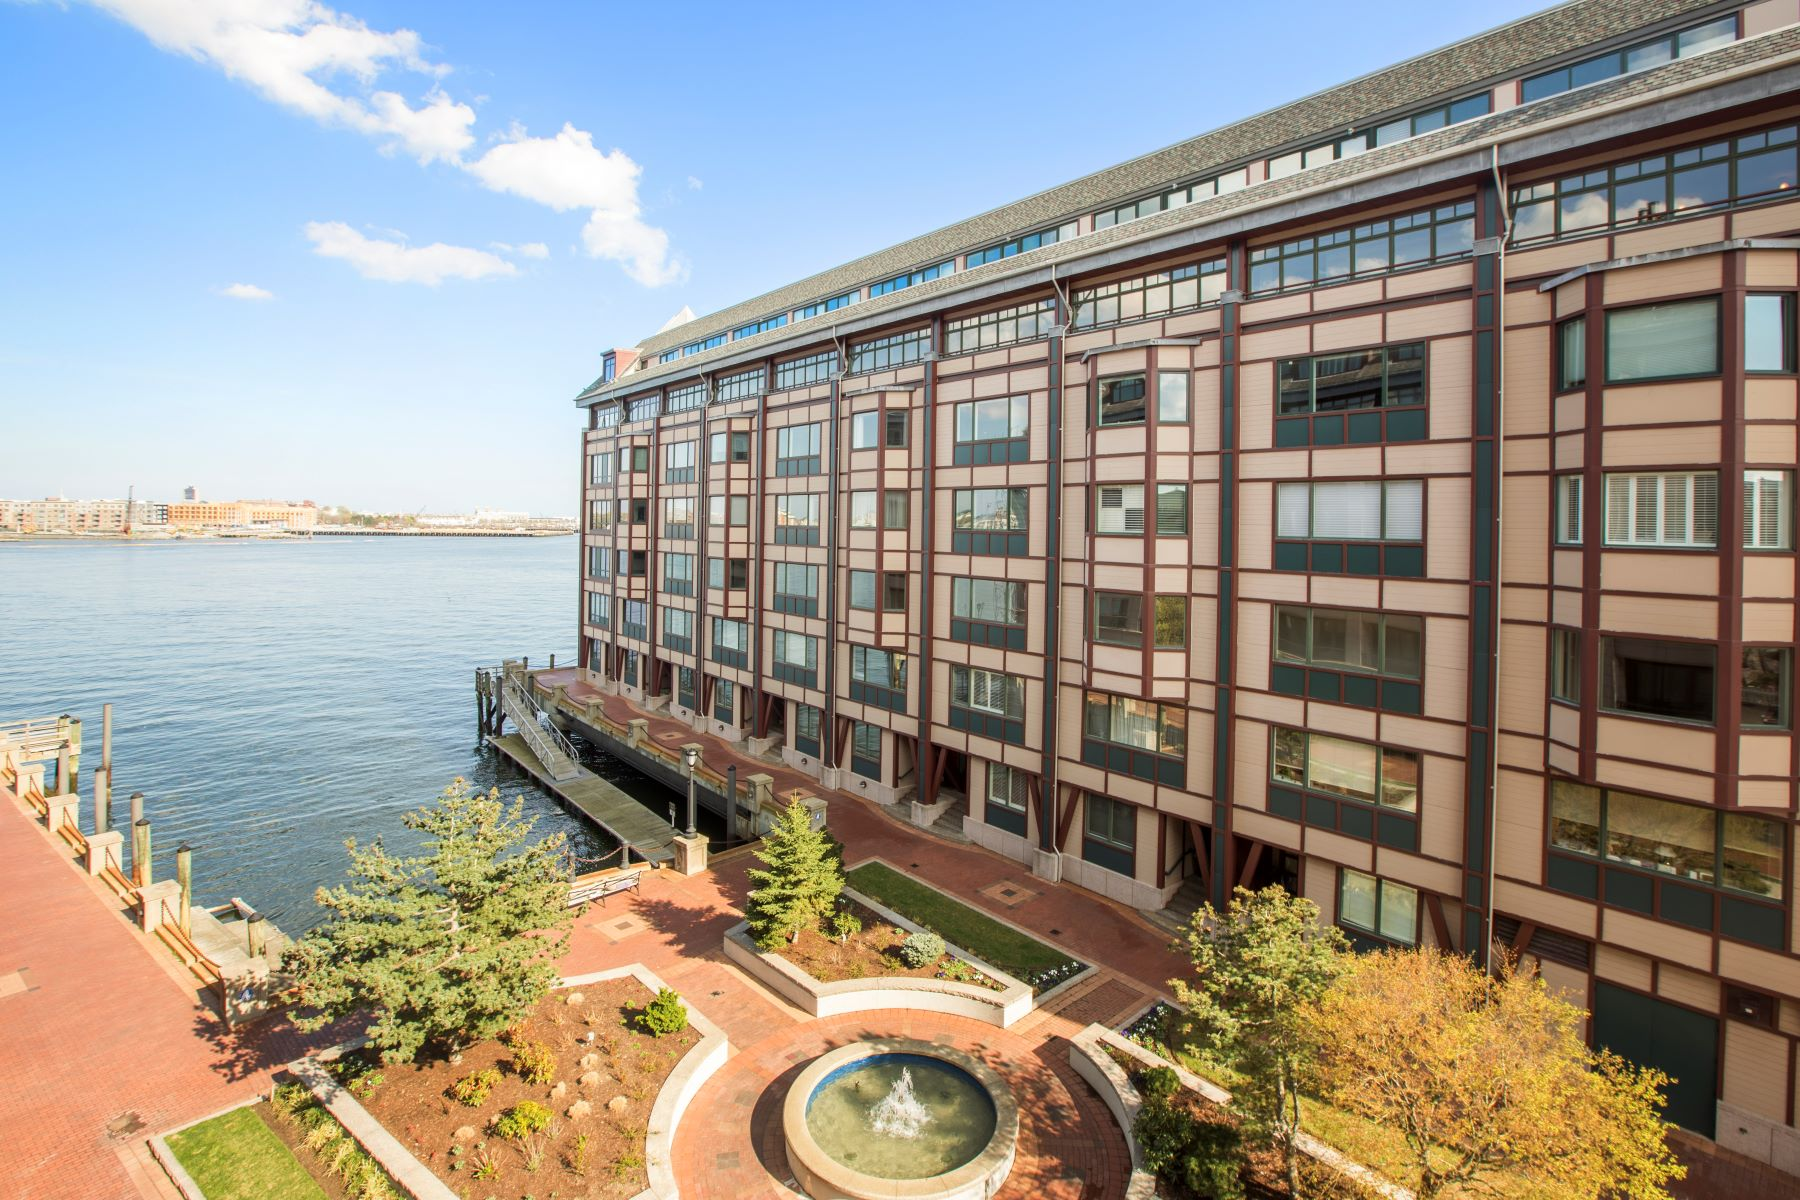 콘도미니엄 용 매매 에 Stunning Showplace At Sought-After Burroughs Wharf 50 Battery Street Unit 401/501 Waterfront, Boston, 매사추세츠, 02109 미국